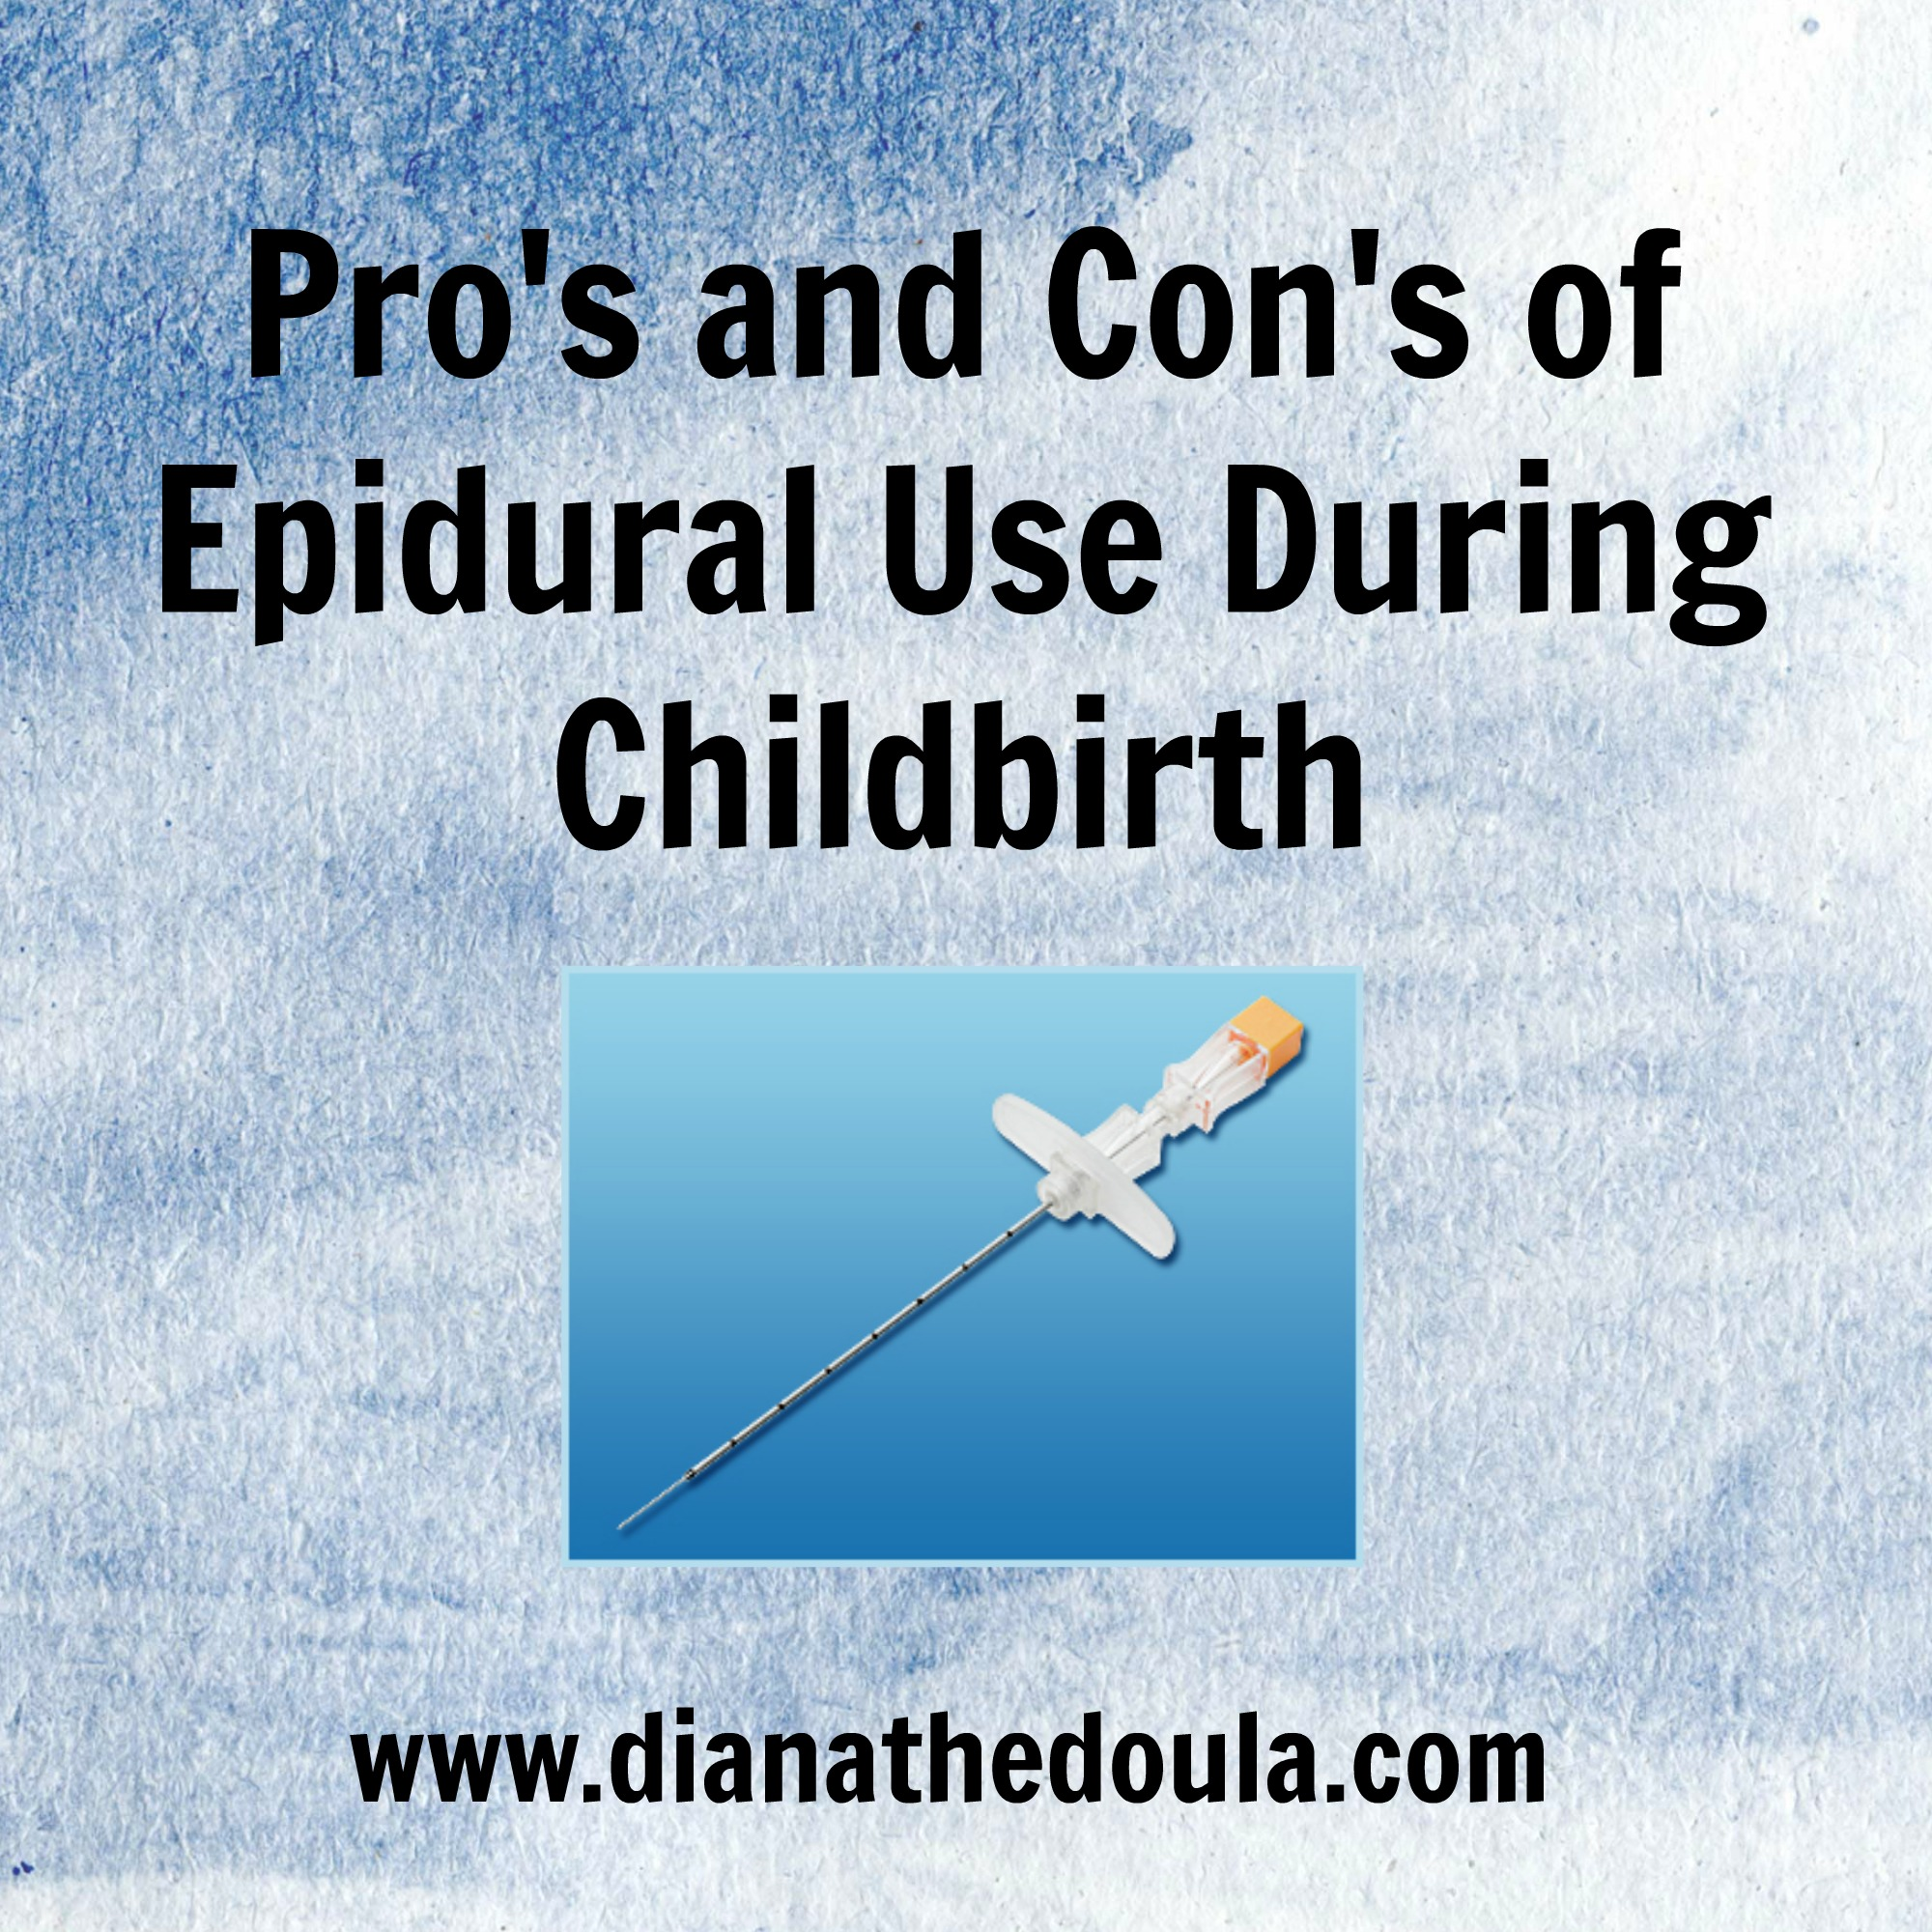 Pro's and Con's of Epidural Use